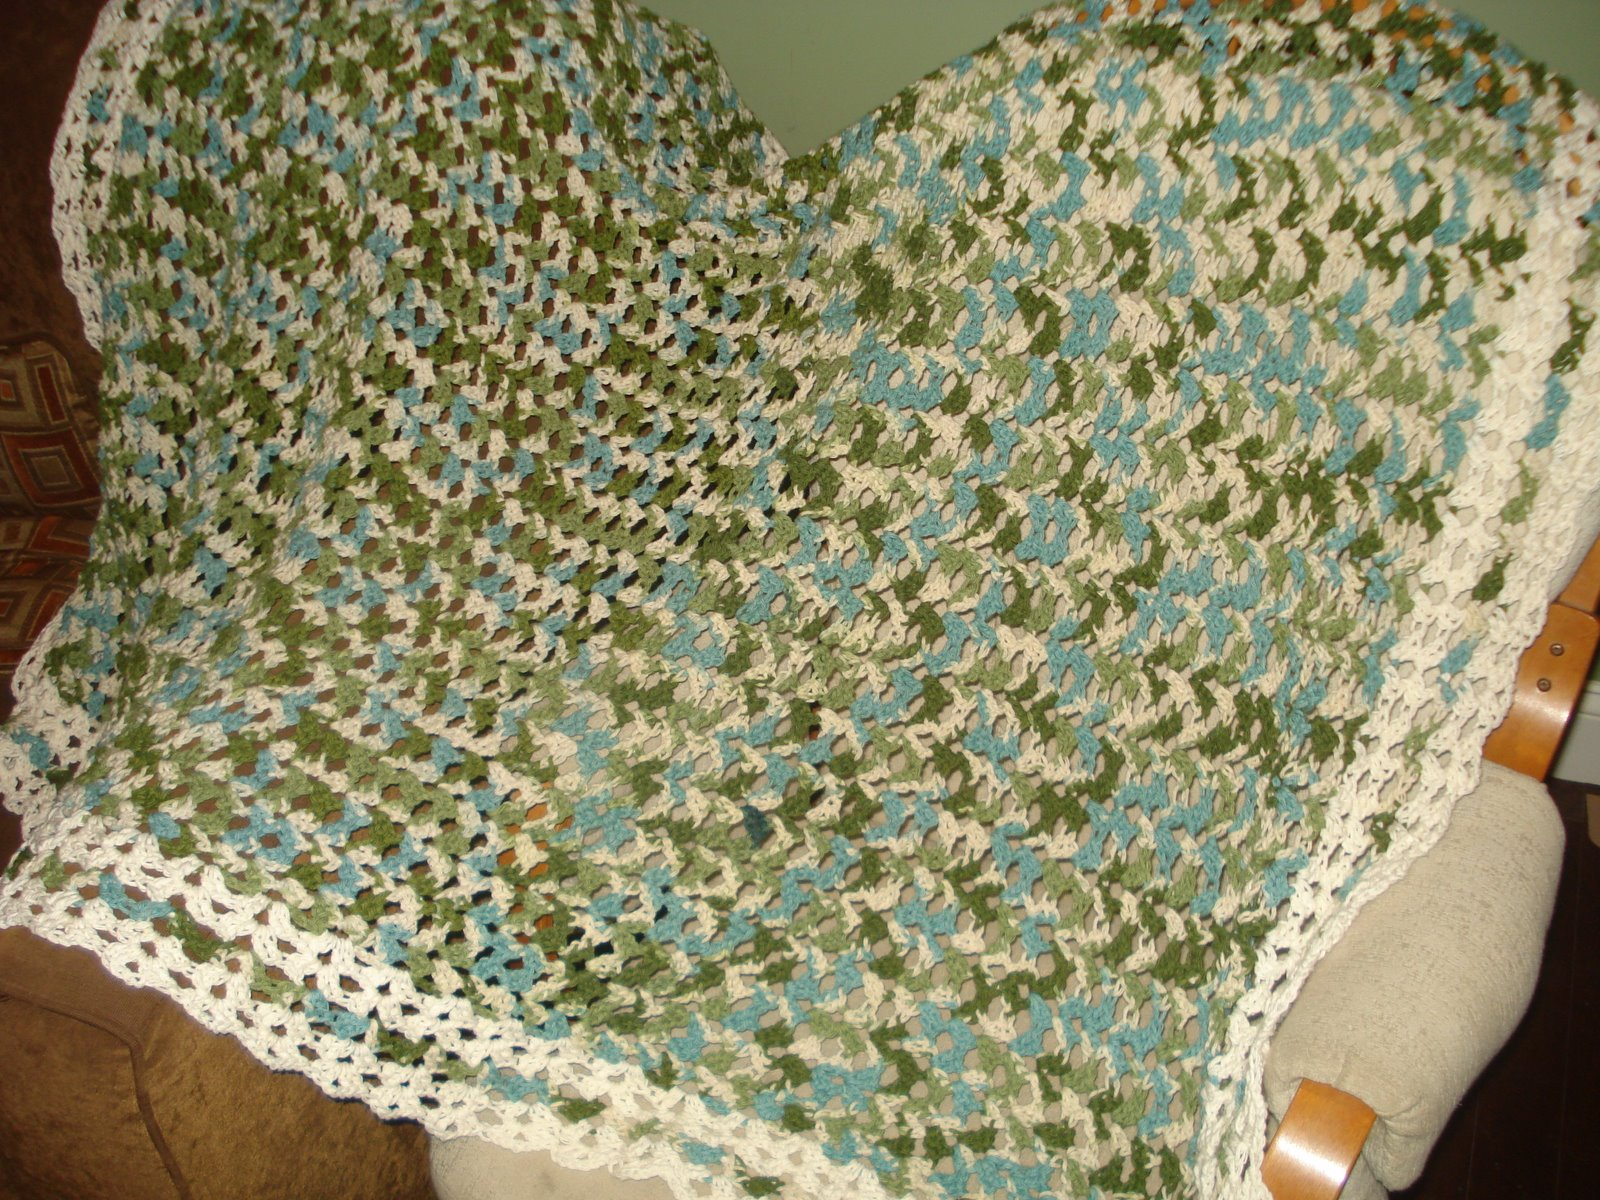 Crochet Patterns Variegated Yarn : Ginger Mess: Crocheted Blanket with Variegated Yarn